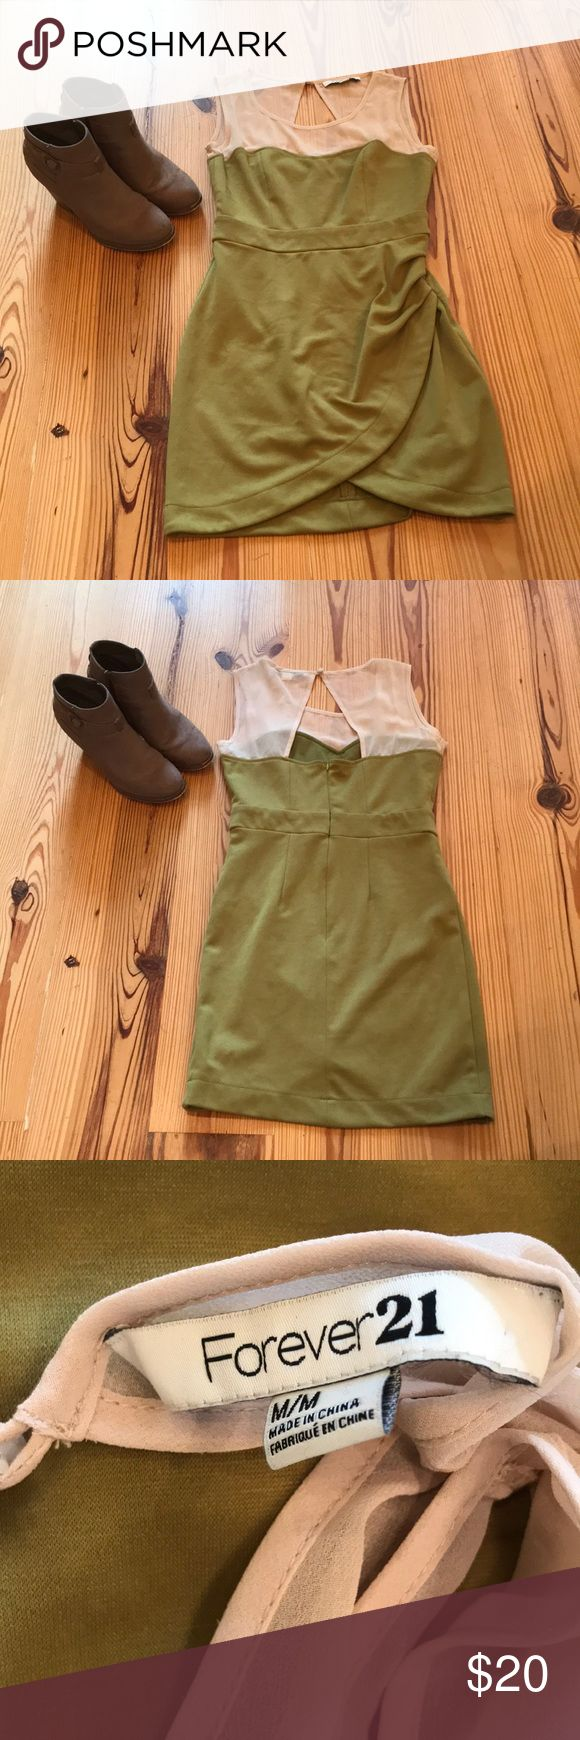 Green Mini Dress Forever 21. Mesh top with cutout Green Mini Dress Forever 21.  Mesh top with cutout on back Size medium Form fitting Ruched side So cute! Forever 21 Dresses Mini